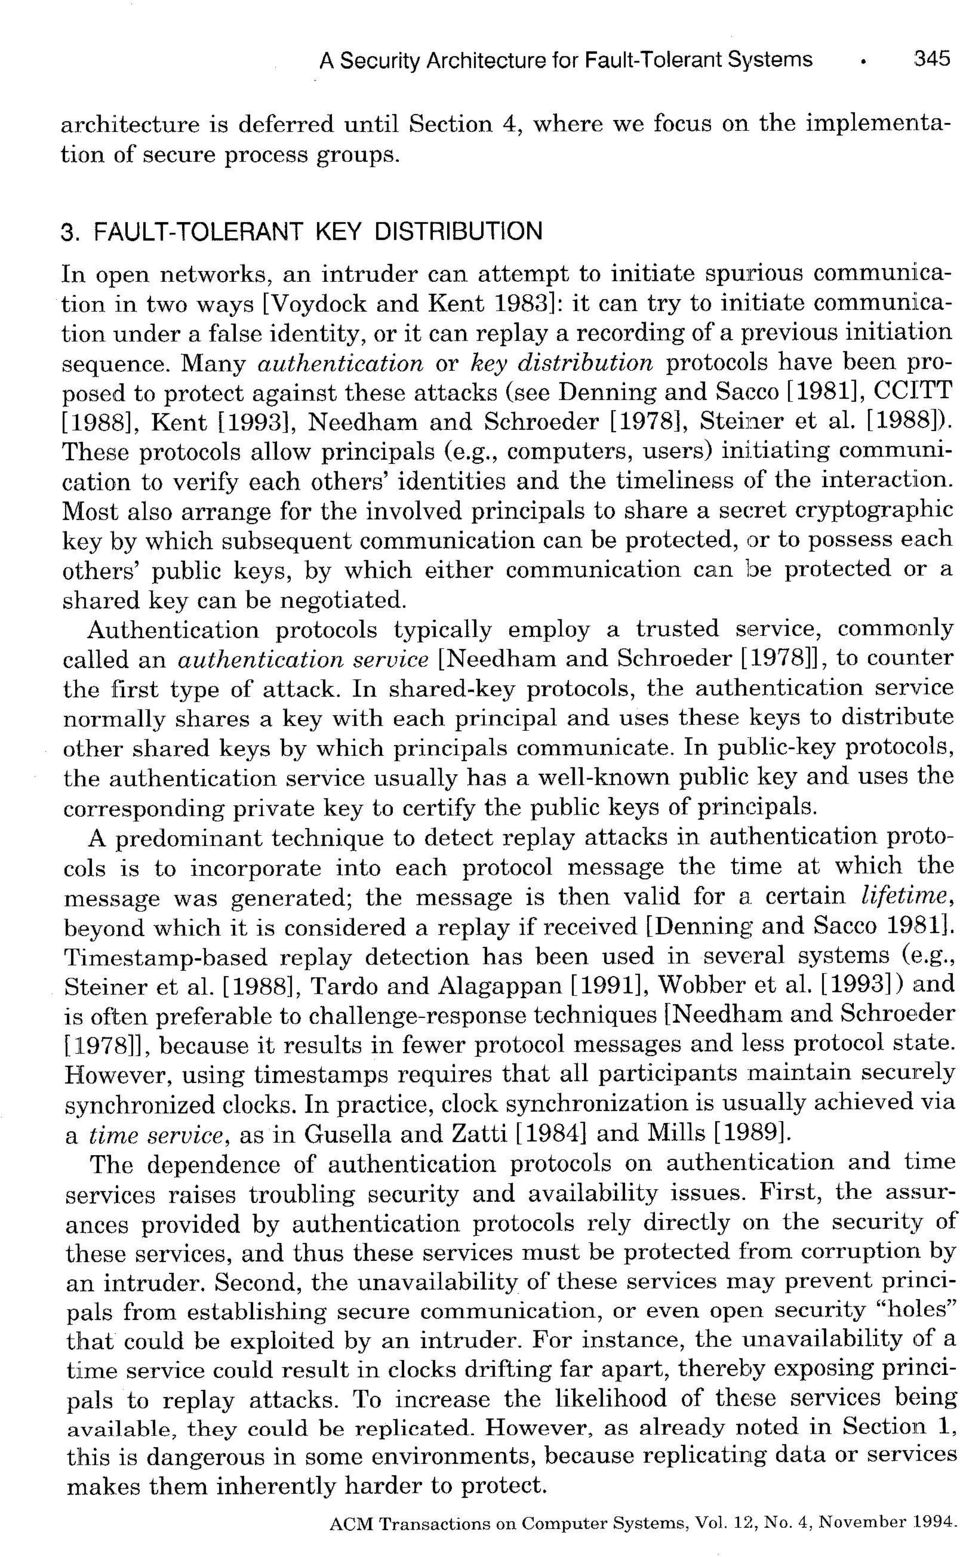 FAULT-TOLERANT KEY DISTRIBUTION In open networks, an intruder can attempt to initiate spurious communication in two ways [Voydock and Kent 1983]: it can try to initiate communication under a false